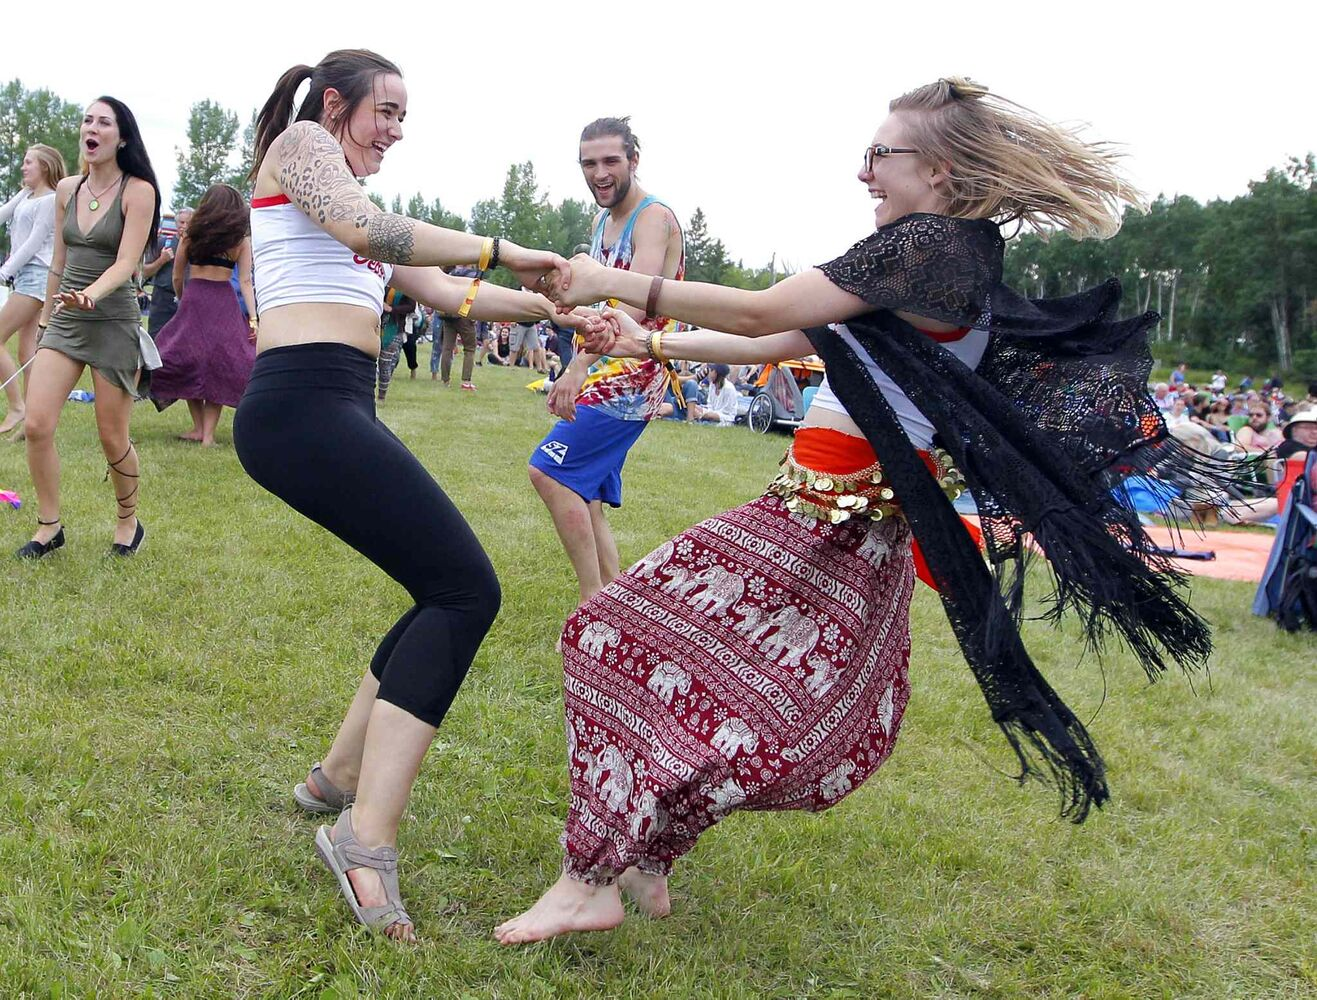 BORIS MINKEVICH / WINNIPEG FREE PRESS </p><P> Friends enjoy some dancing near the Main Stage Thursday evening.